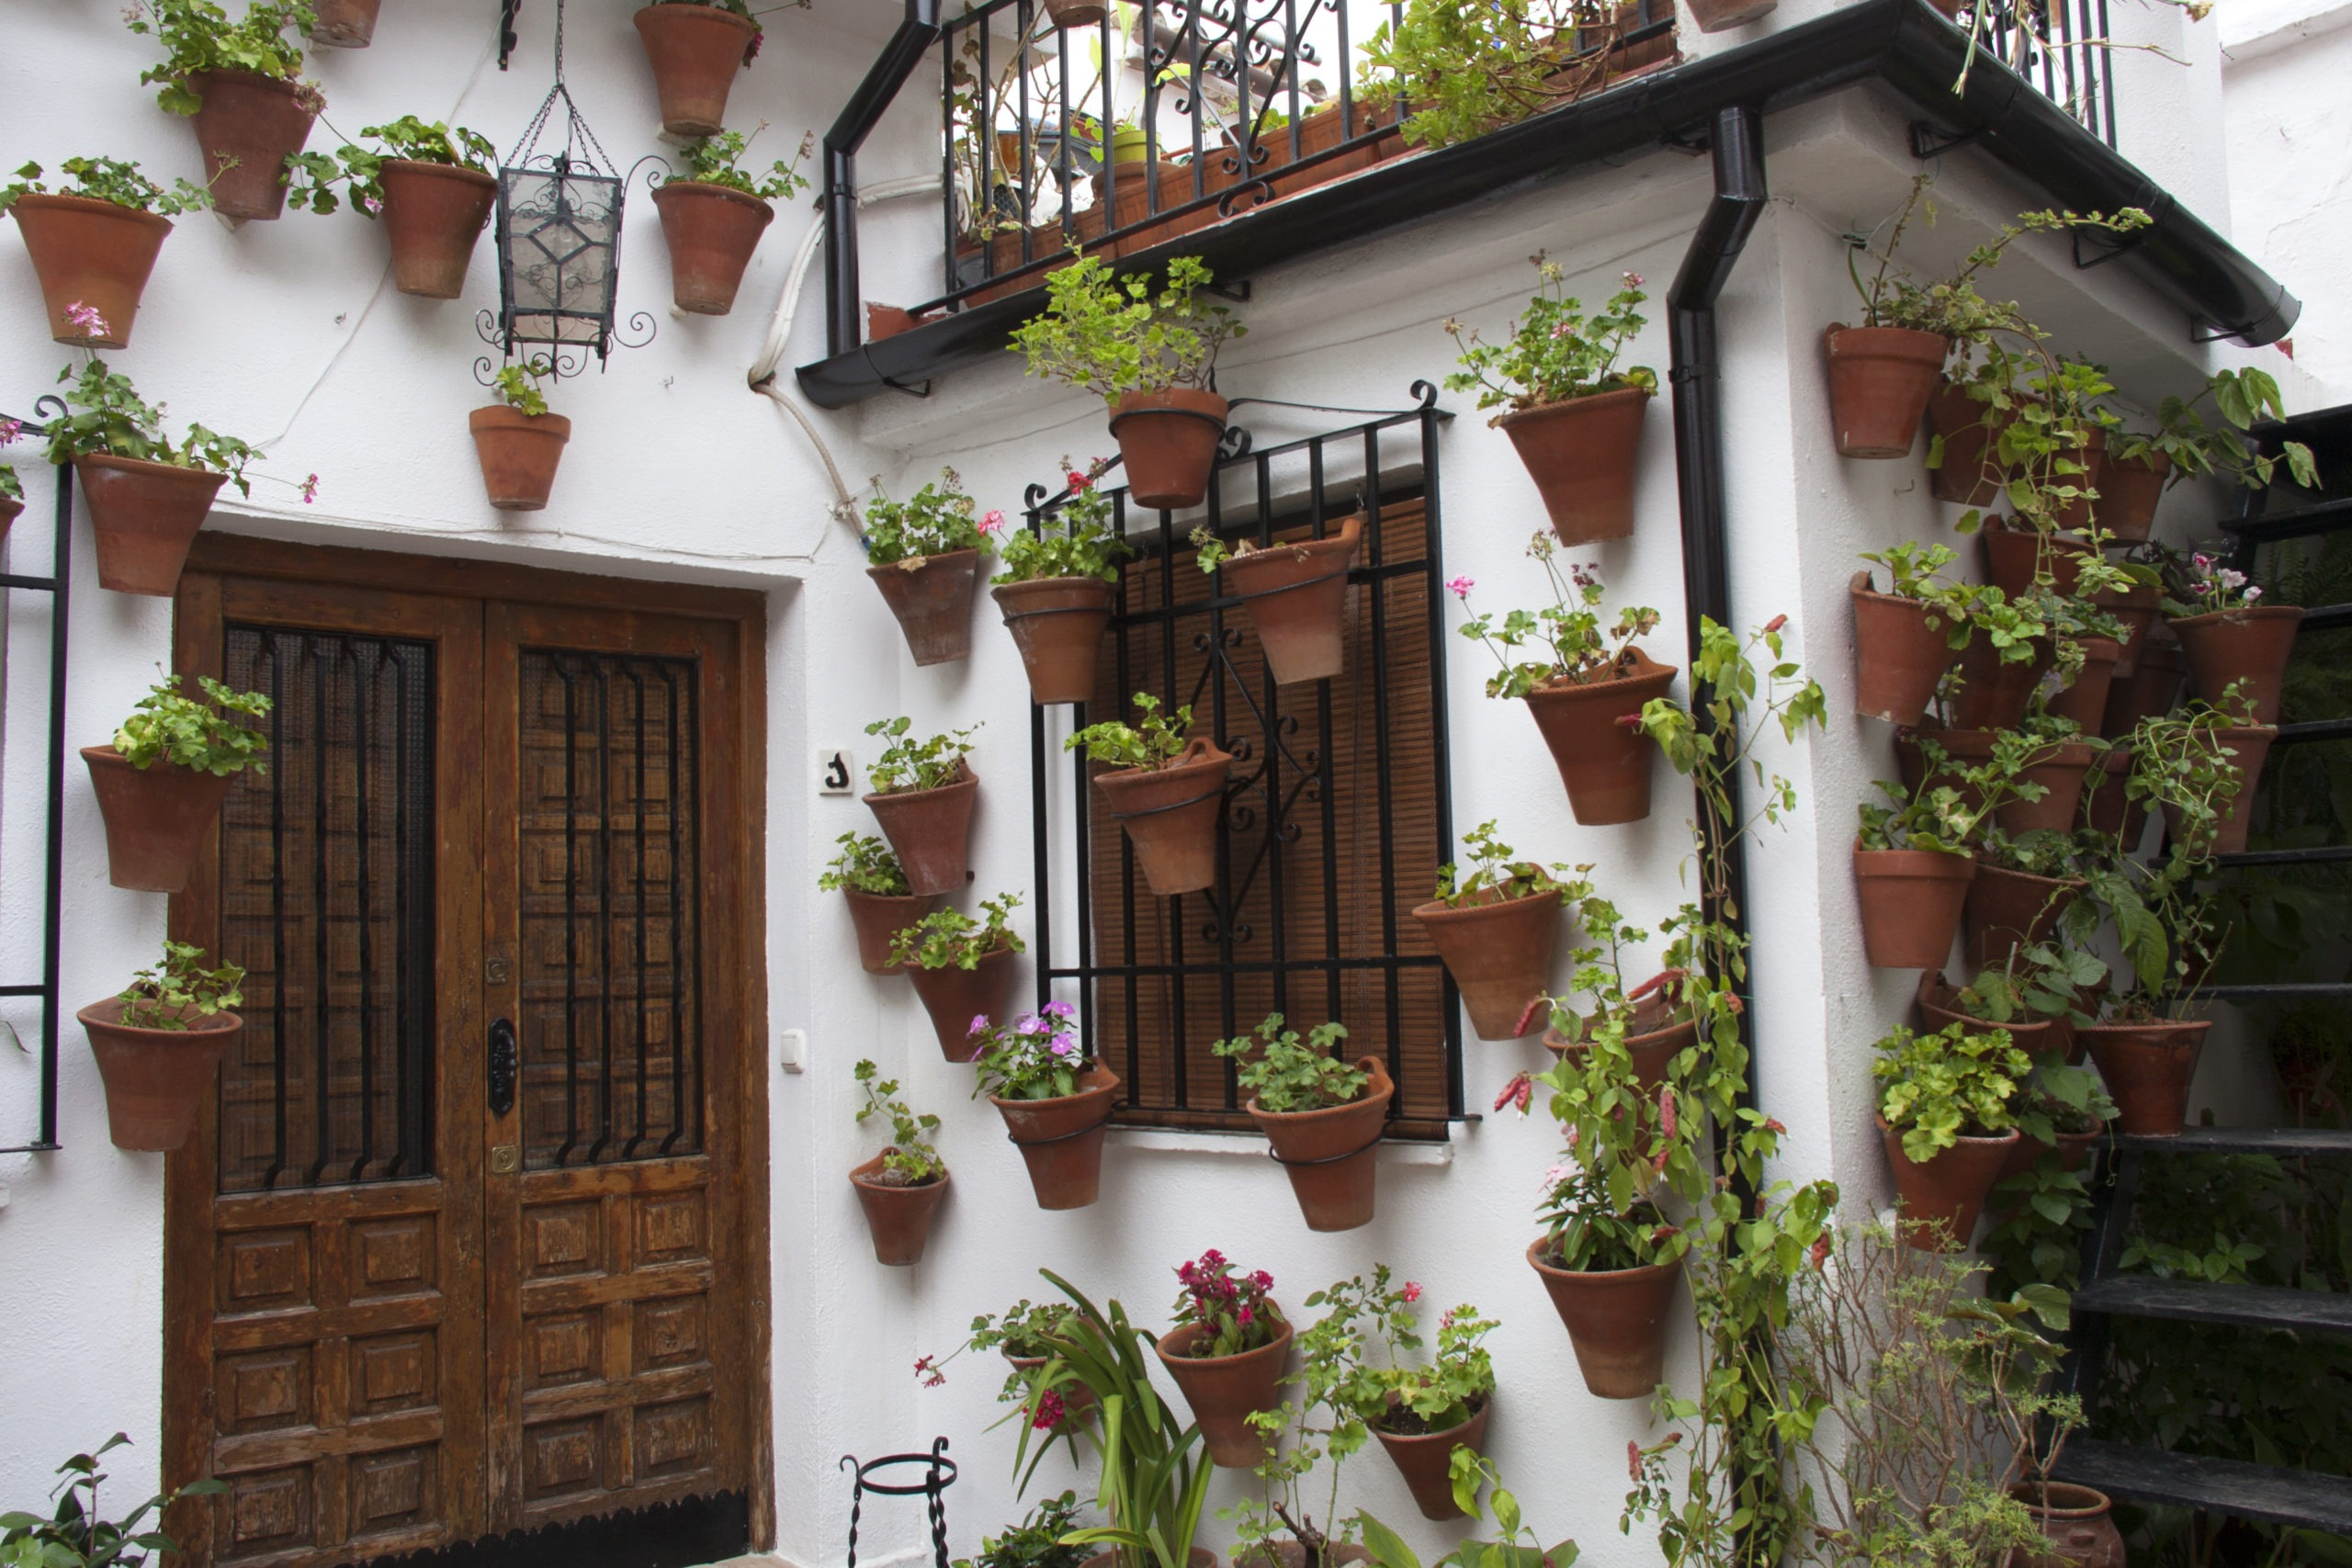 Andalusian patio facade decorated with pots and hanging plants.